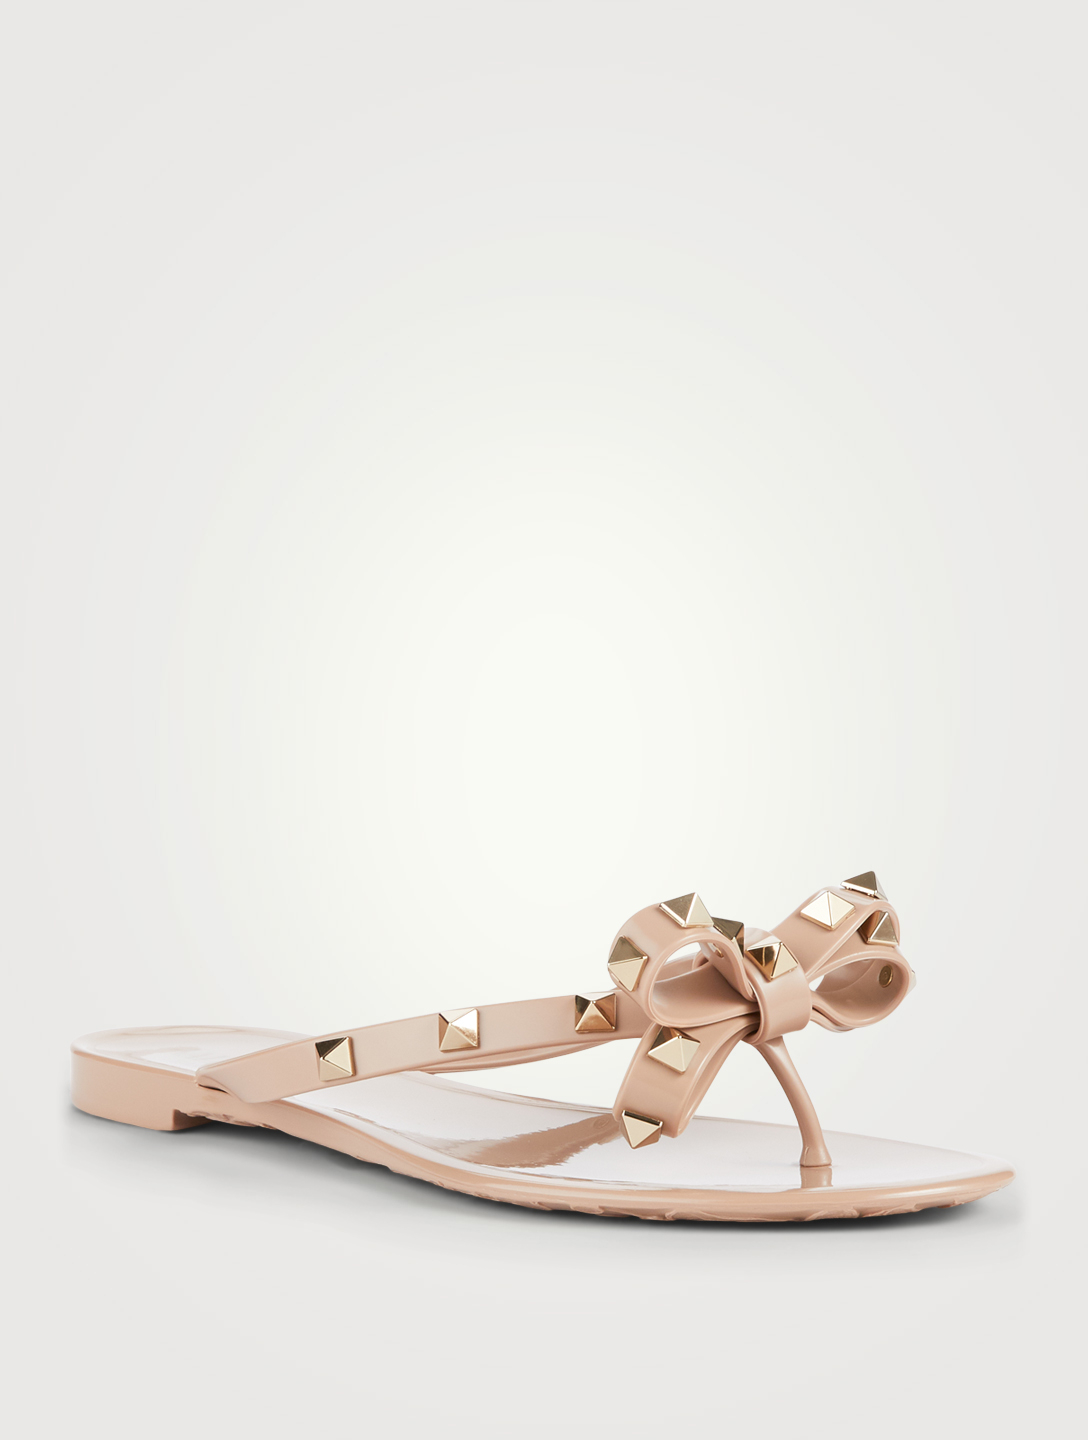 8ed1e47d0e2 ... VALENTINO Rockstud Jelly Thong Sandals Womens Neutral ...